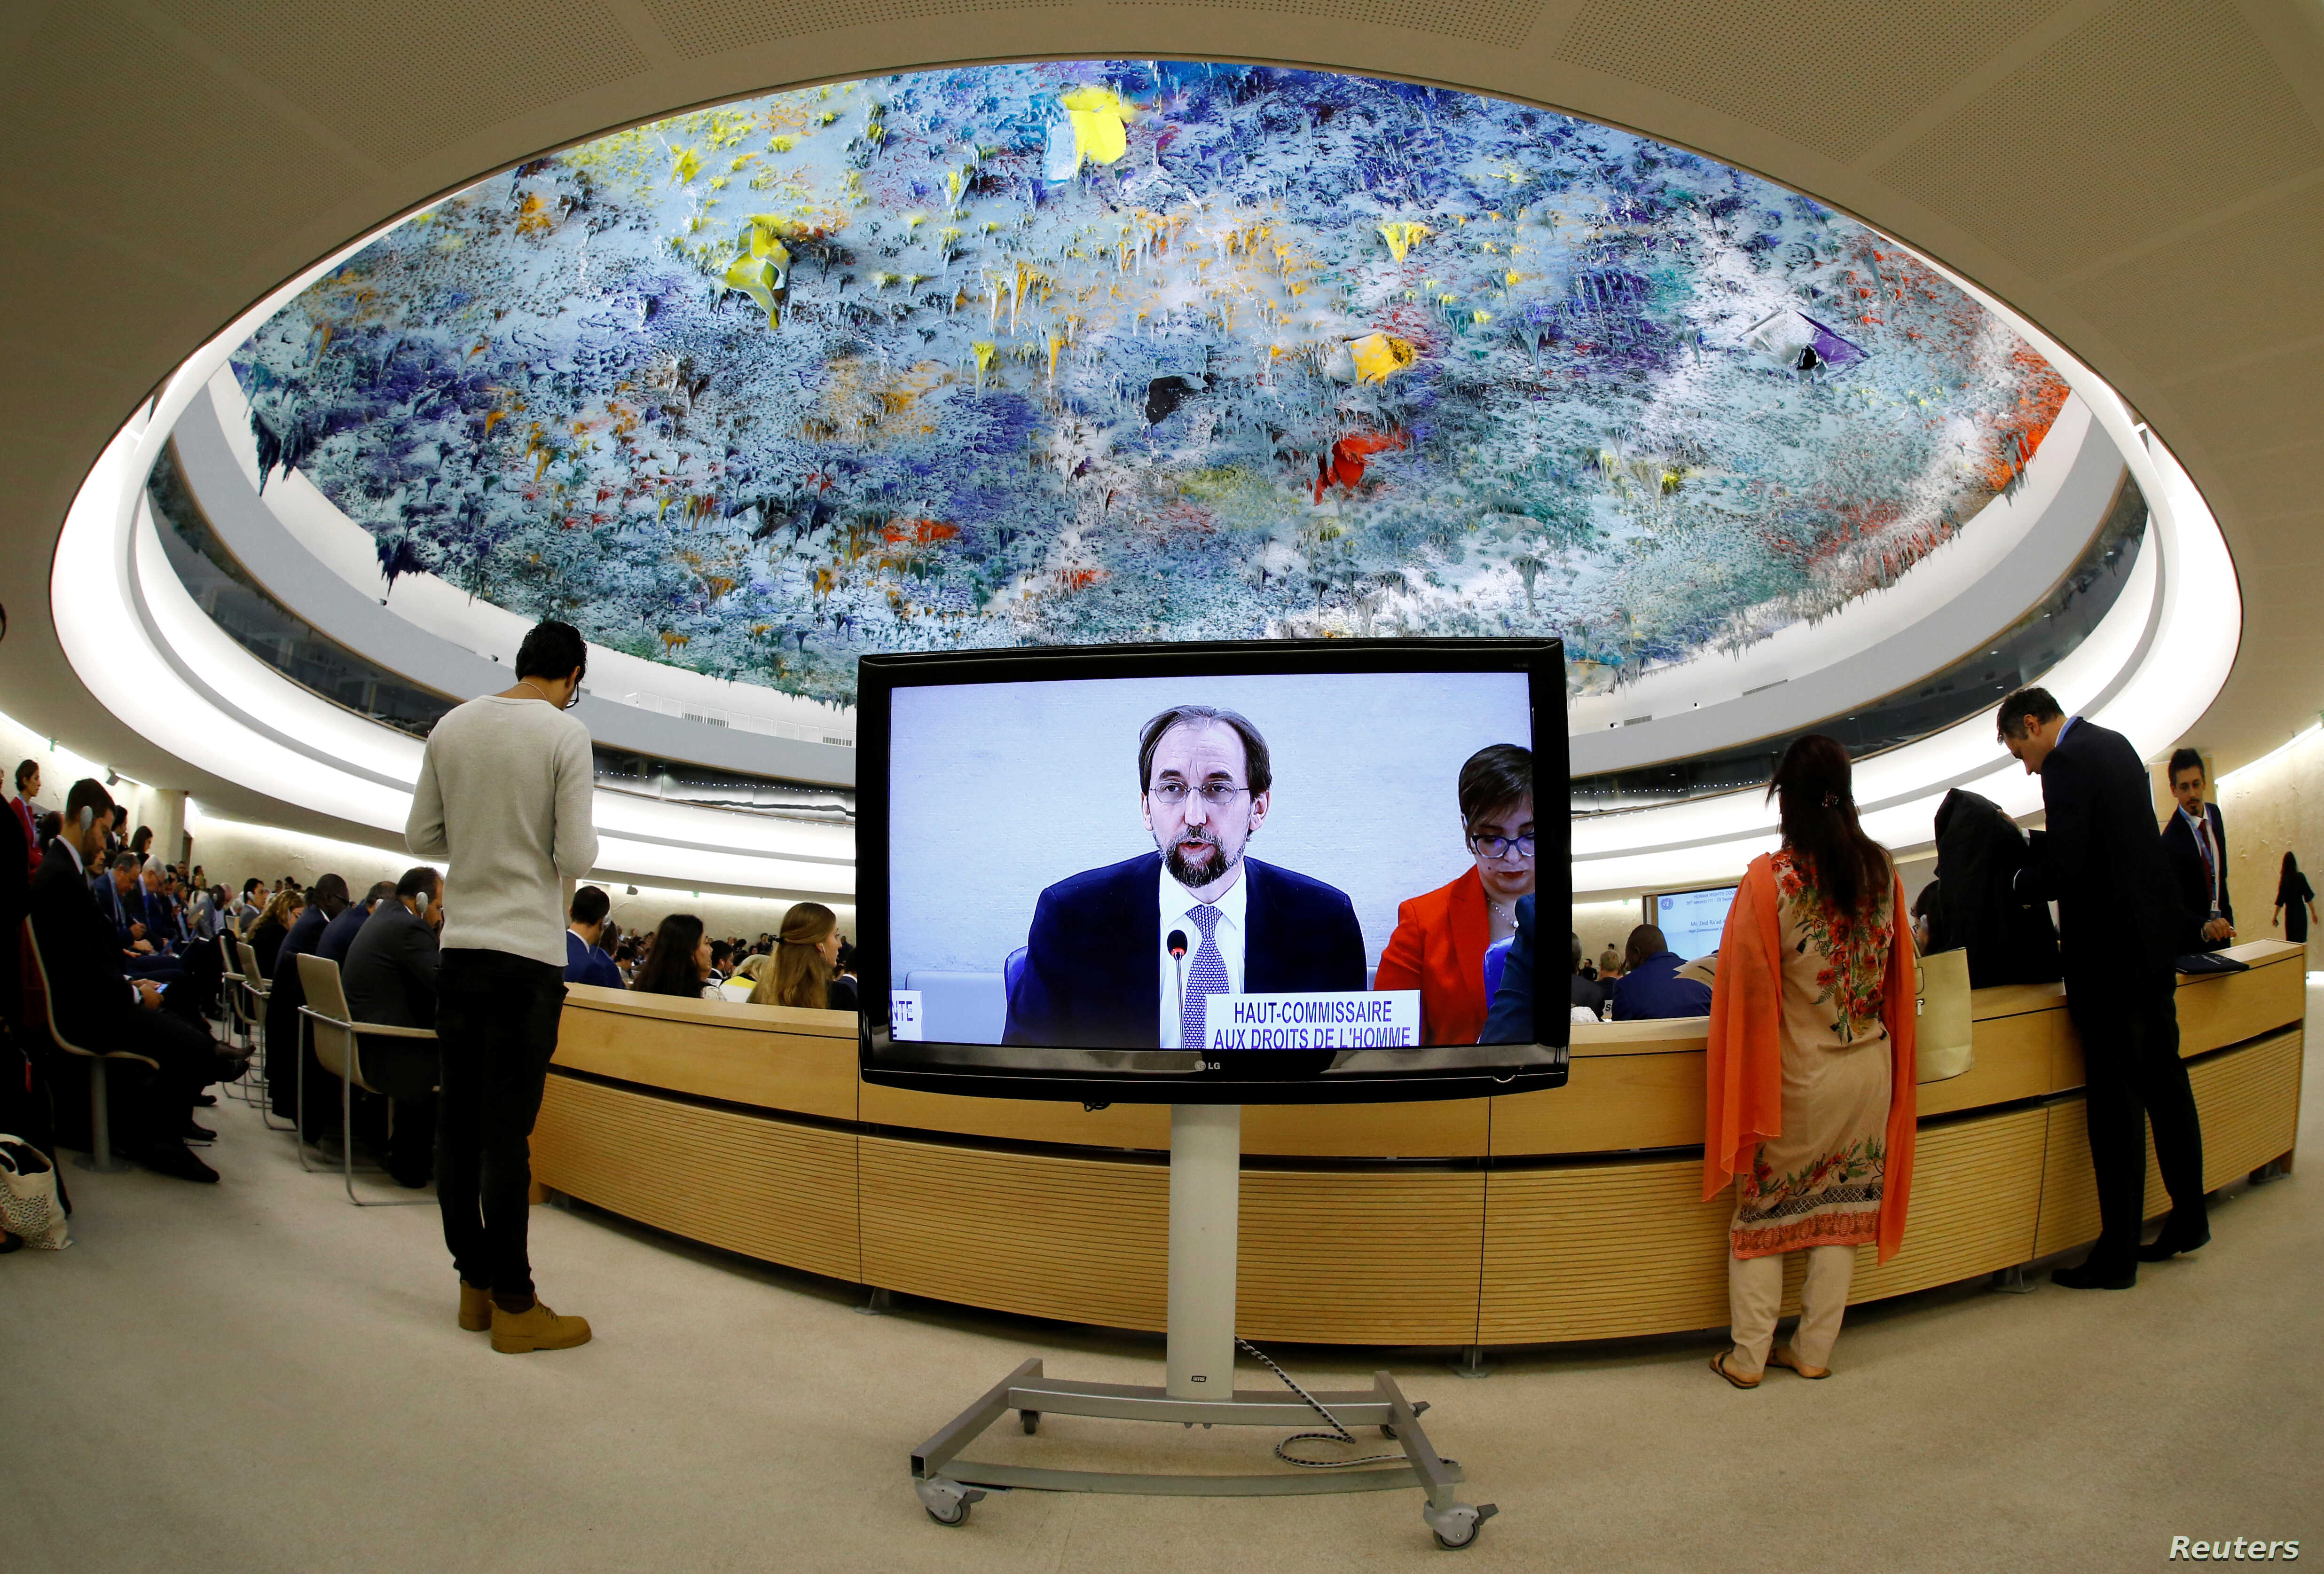 UN: Human Rights Protections Threatened by Growing